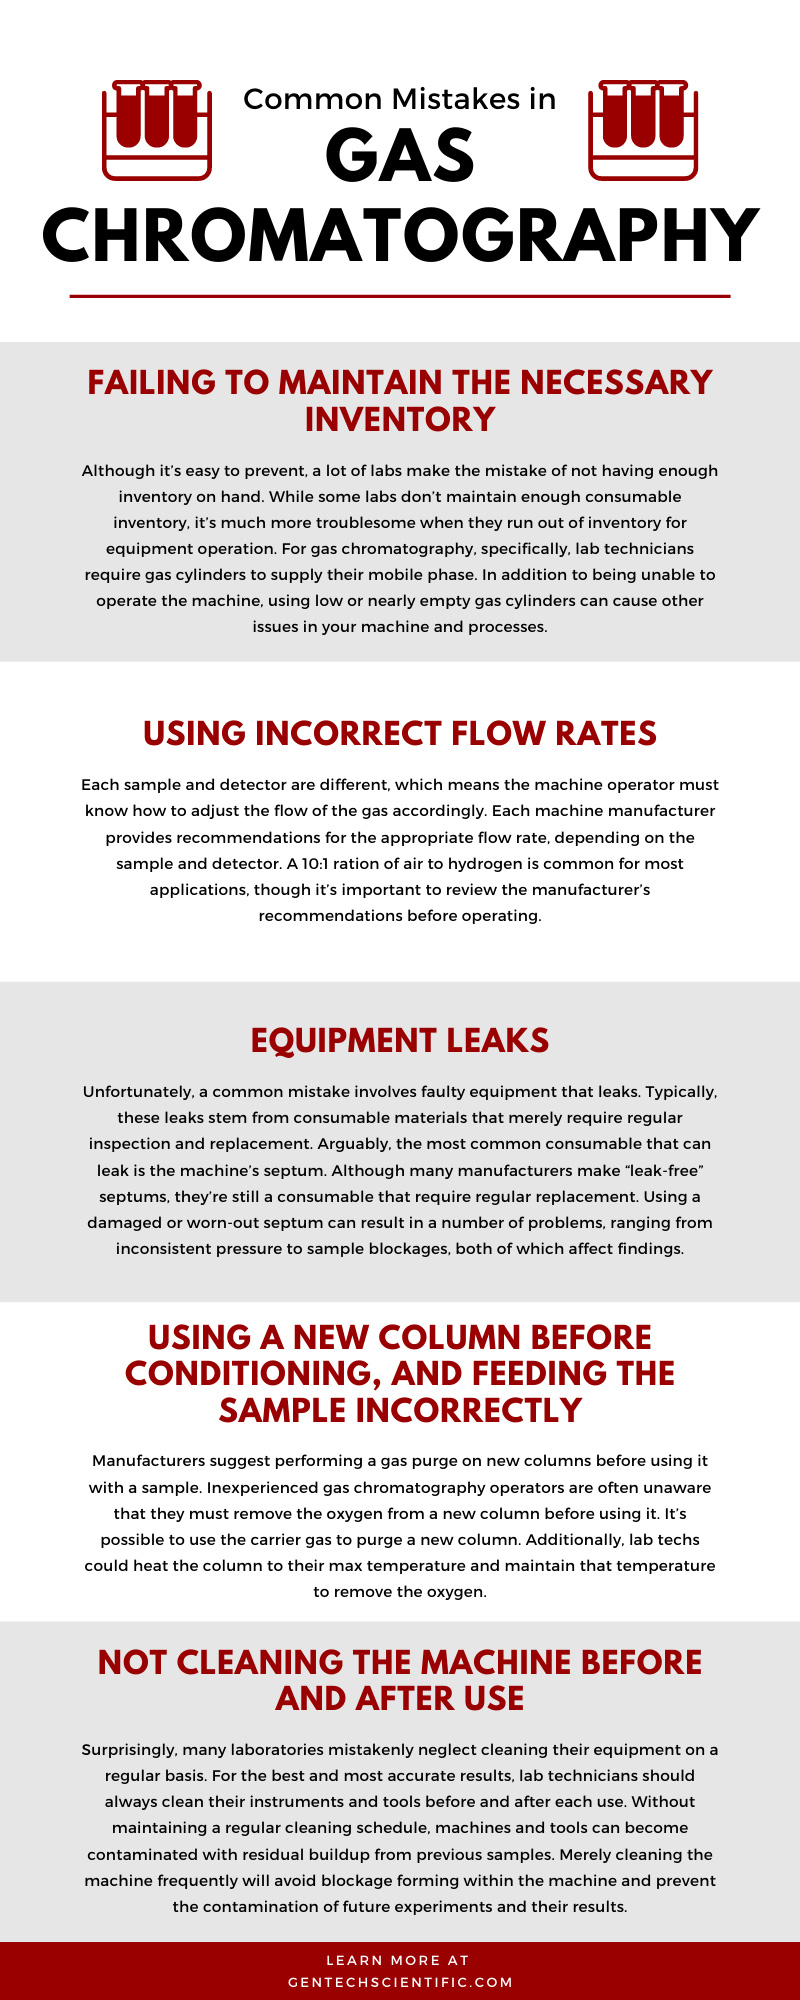 Common mistakes in gas chromatography